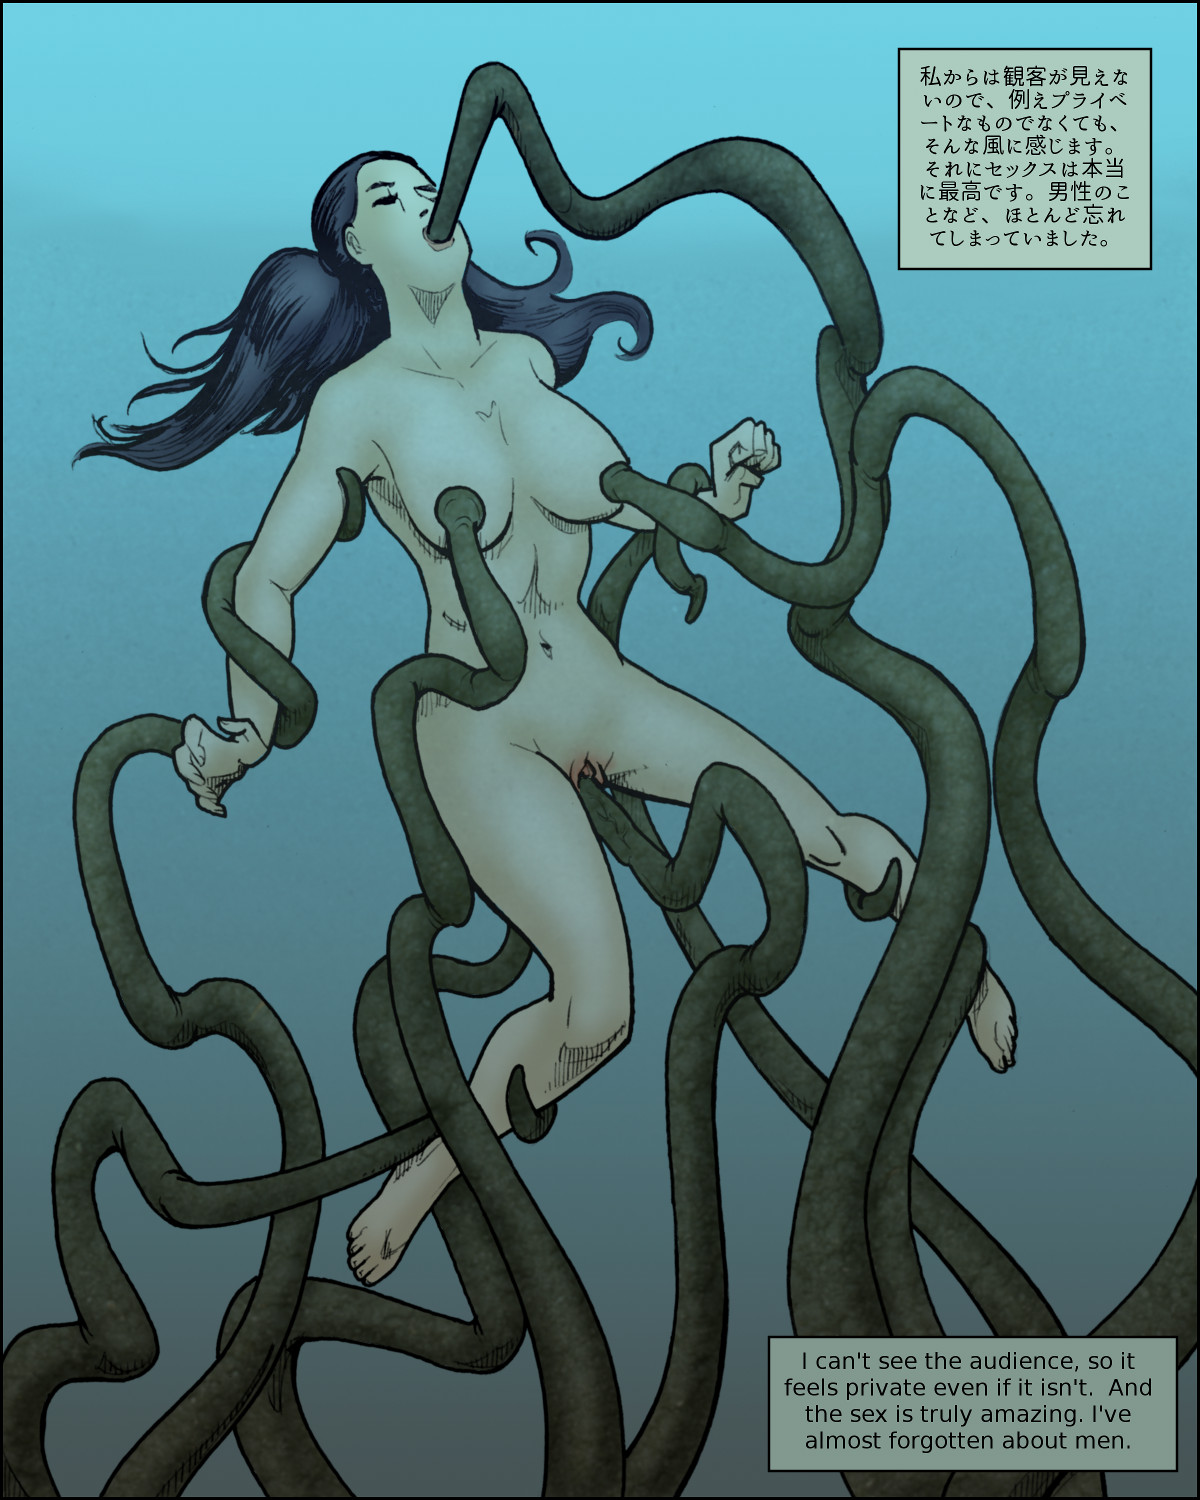 Chiba thinks tentacle sex is better than human sex.